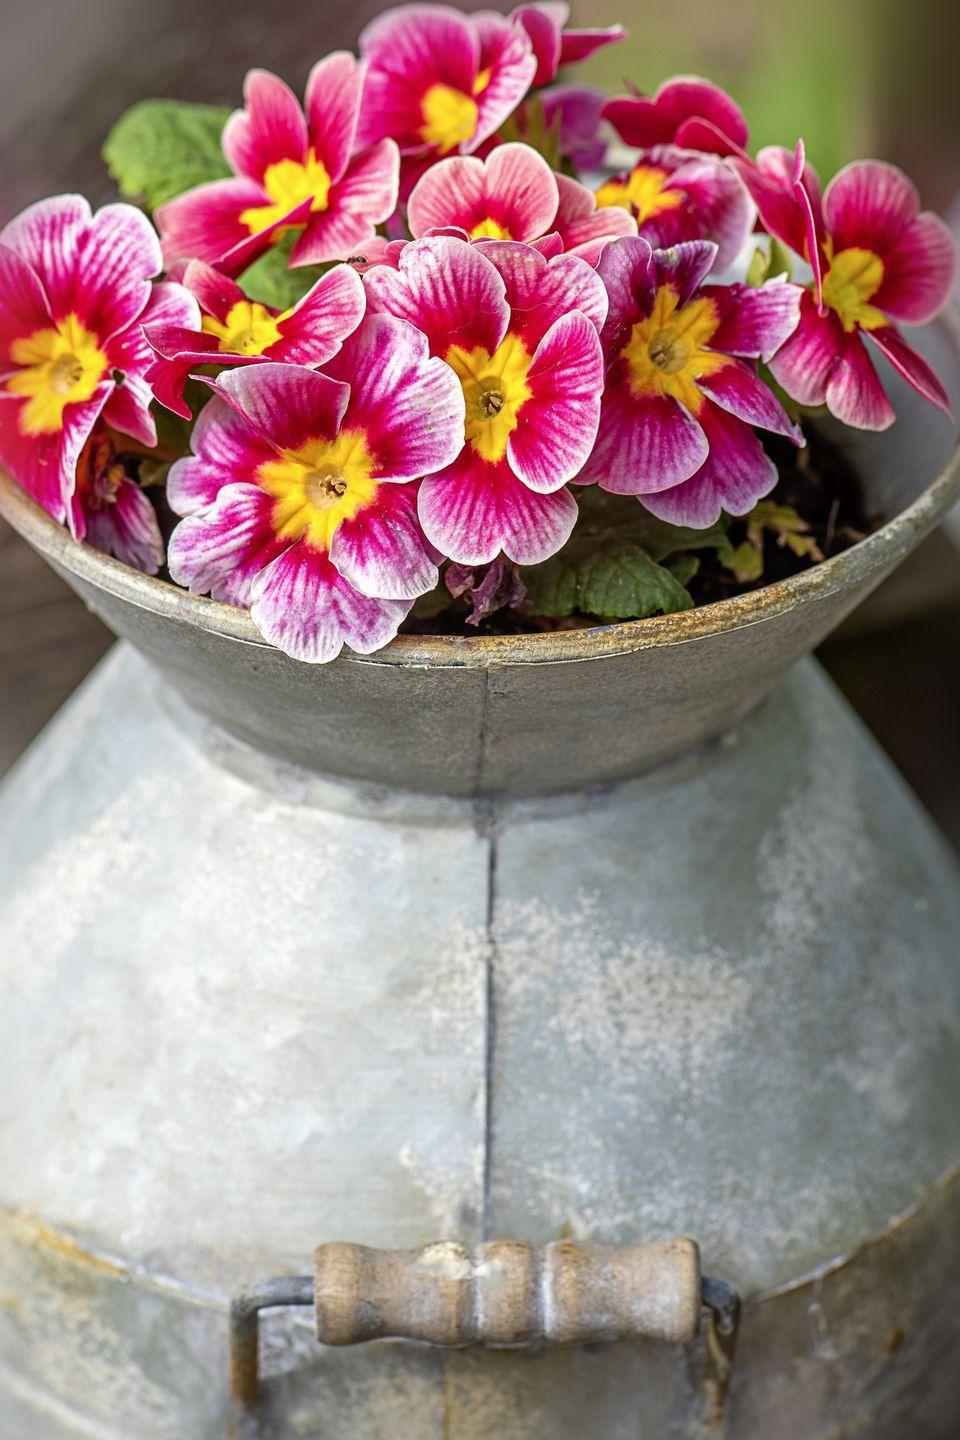 """<p>These charming perennials are some of the earliest to bloom in spring. Though they appear delicate, they're actually extremely hardy against the cold. There are hundreds of species of primroses, so look for one that will survive winter in your area. This type of flower will tolerate part sun.</p><p><a class=""""link rapid-noclick-resp"""" href=""""https://www.bluestoneperennials.com/PRBL"""" rel=""""nofollow noopener"""" target=""""_blank"""" data-ylk=""""slk:SHOP PRIMROSES"""">SHOP PRIMROSES</a></p>"""